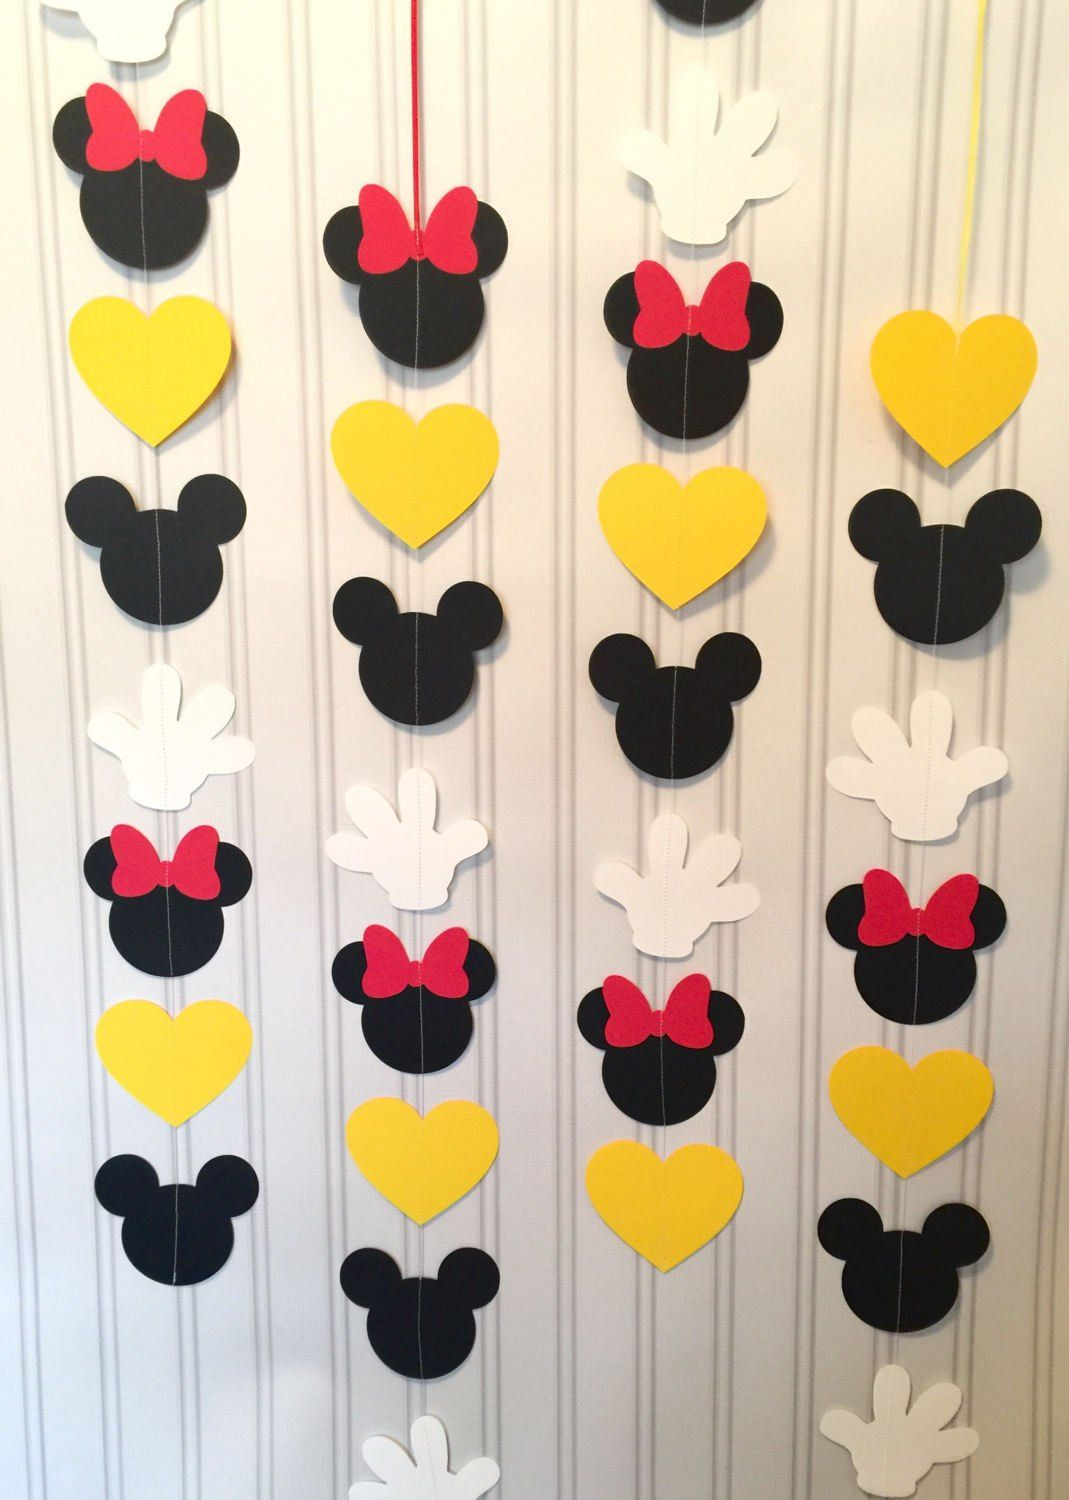 Mickey And Minnie Garlands Set Of 4 Or 8 Vertical Mickey Mouse And Minnie Mouse Birthday Garland Mickey Mouse And Minnie Mouse Party Decor Decoration Anniversaire Mickey Anniversaire Theme Mickey Mouse Decorations Mickey